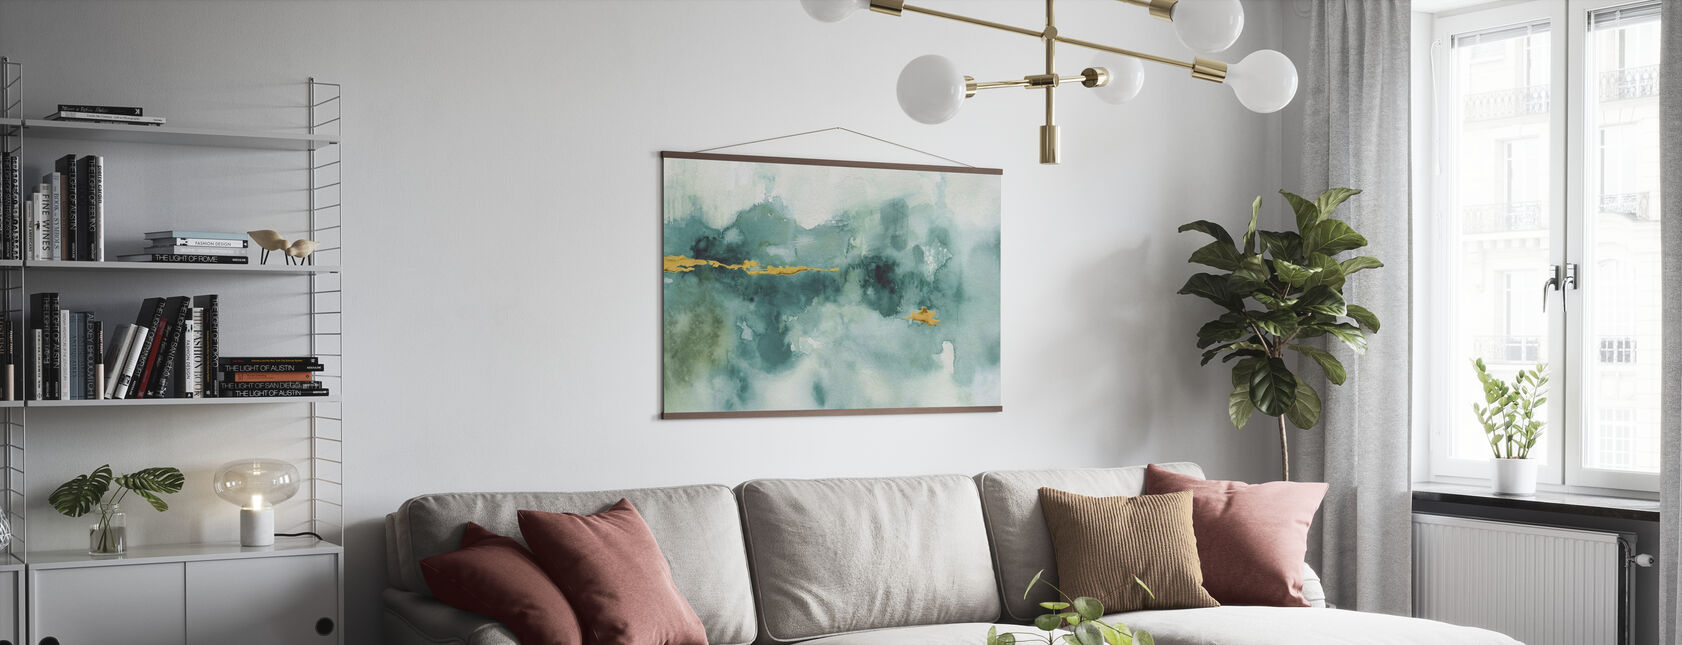 My Greenhouse Watercolor 3 - Poster - Living Room